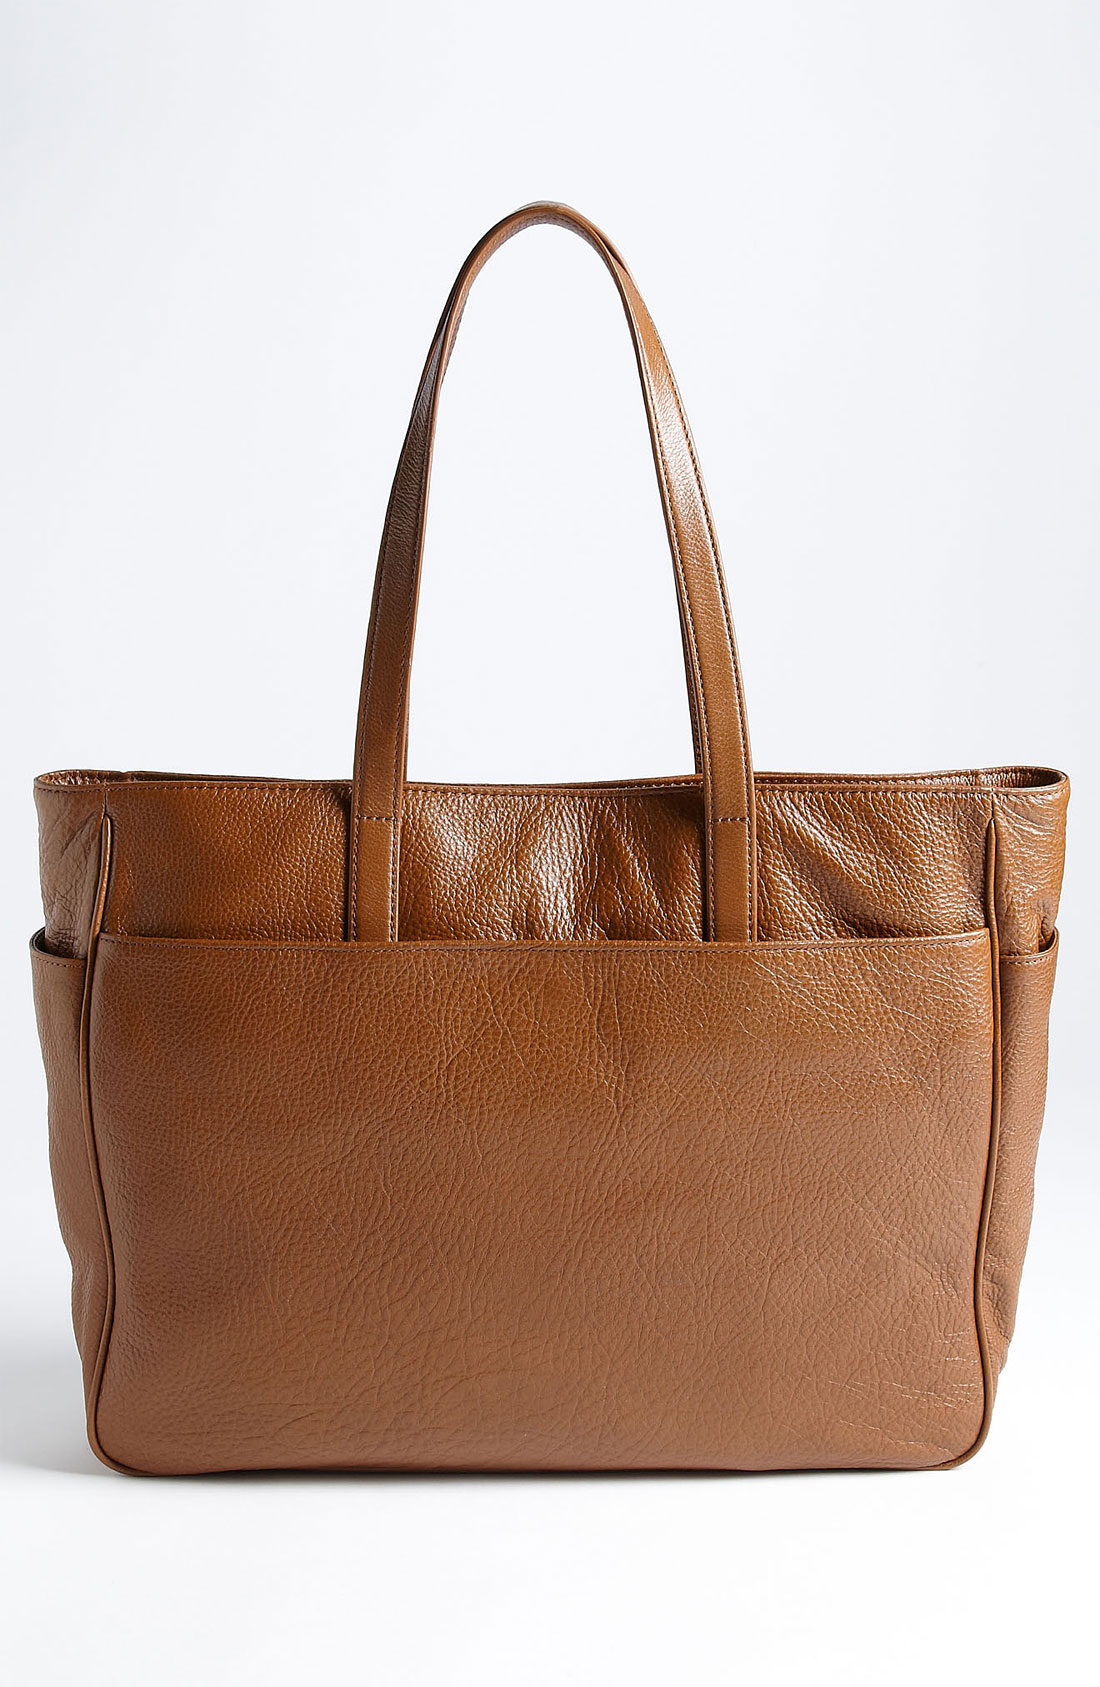 Perforated logo classic leather tote